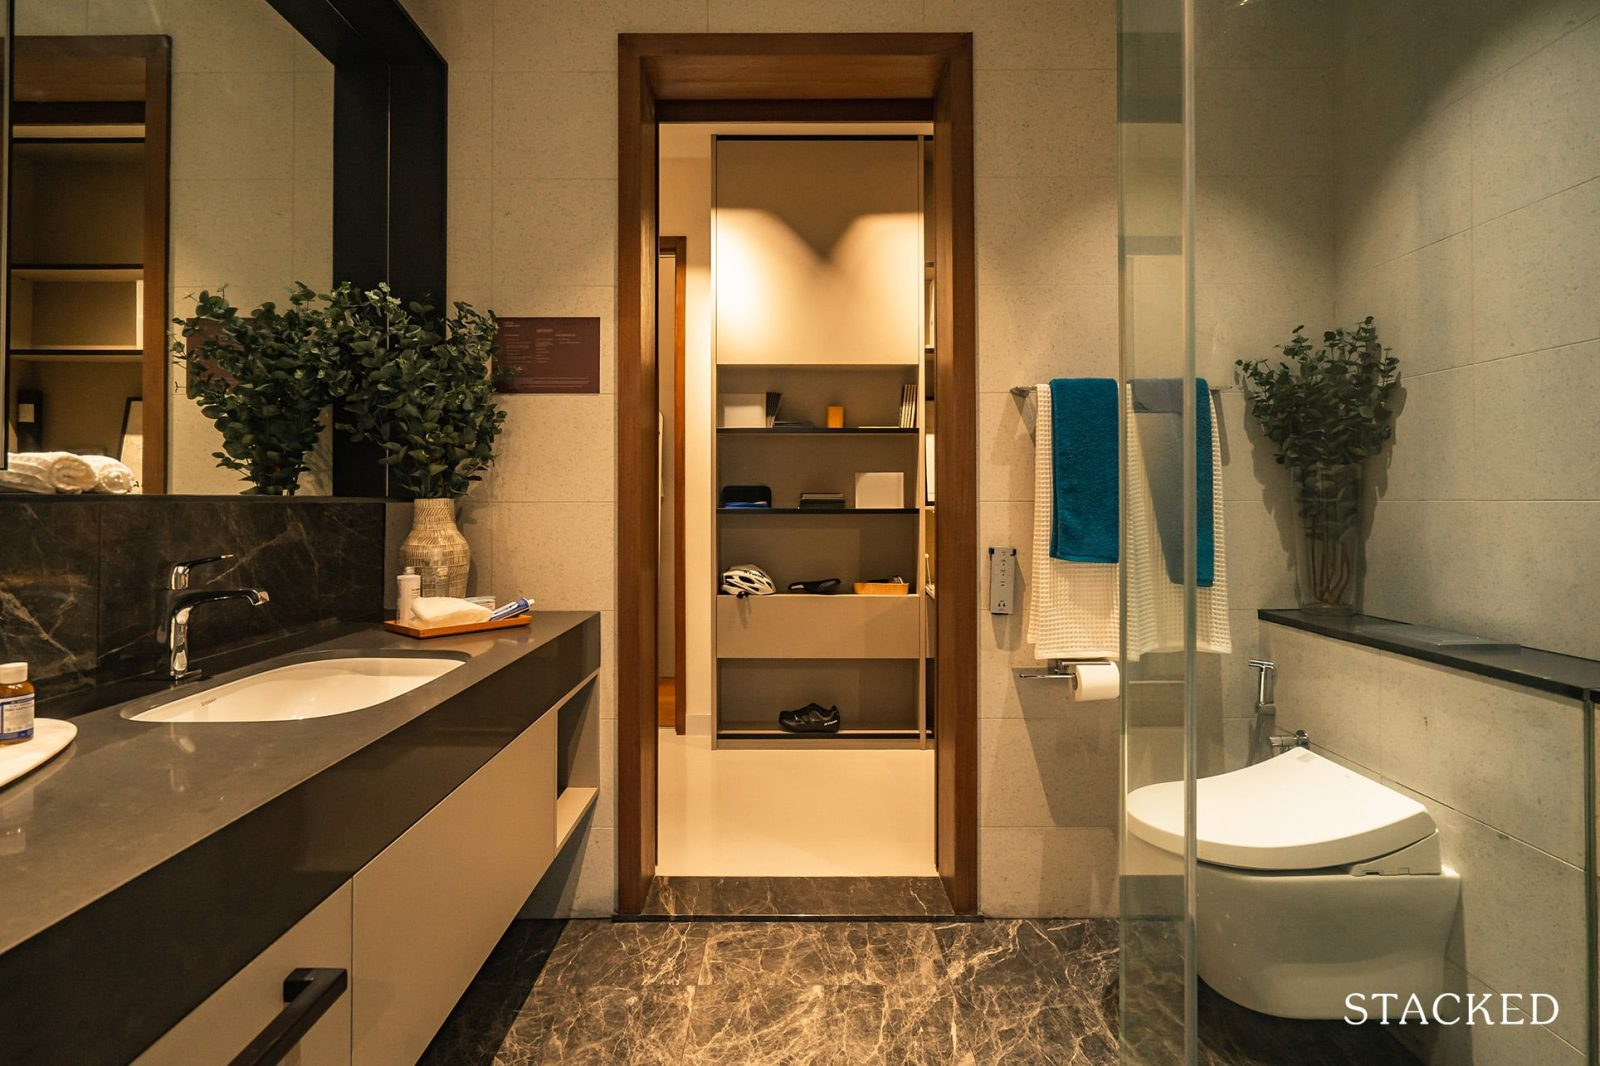 parksuites 2 bedrooms study common bathroom